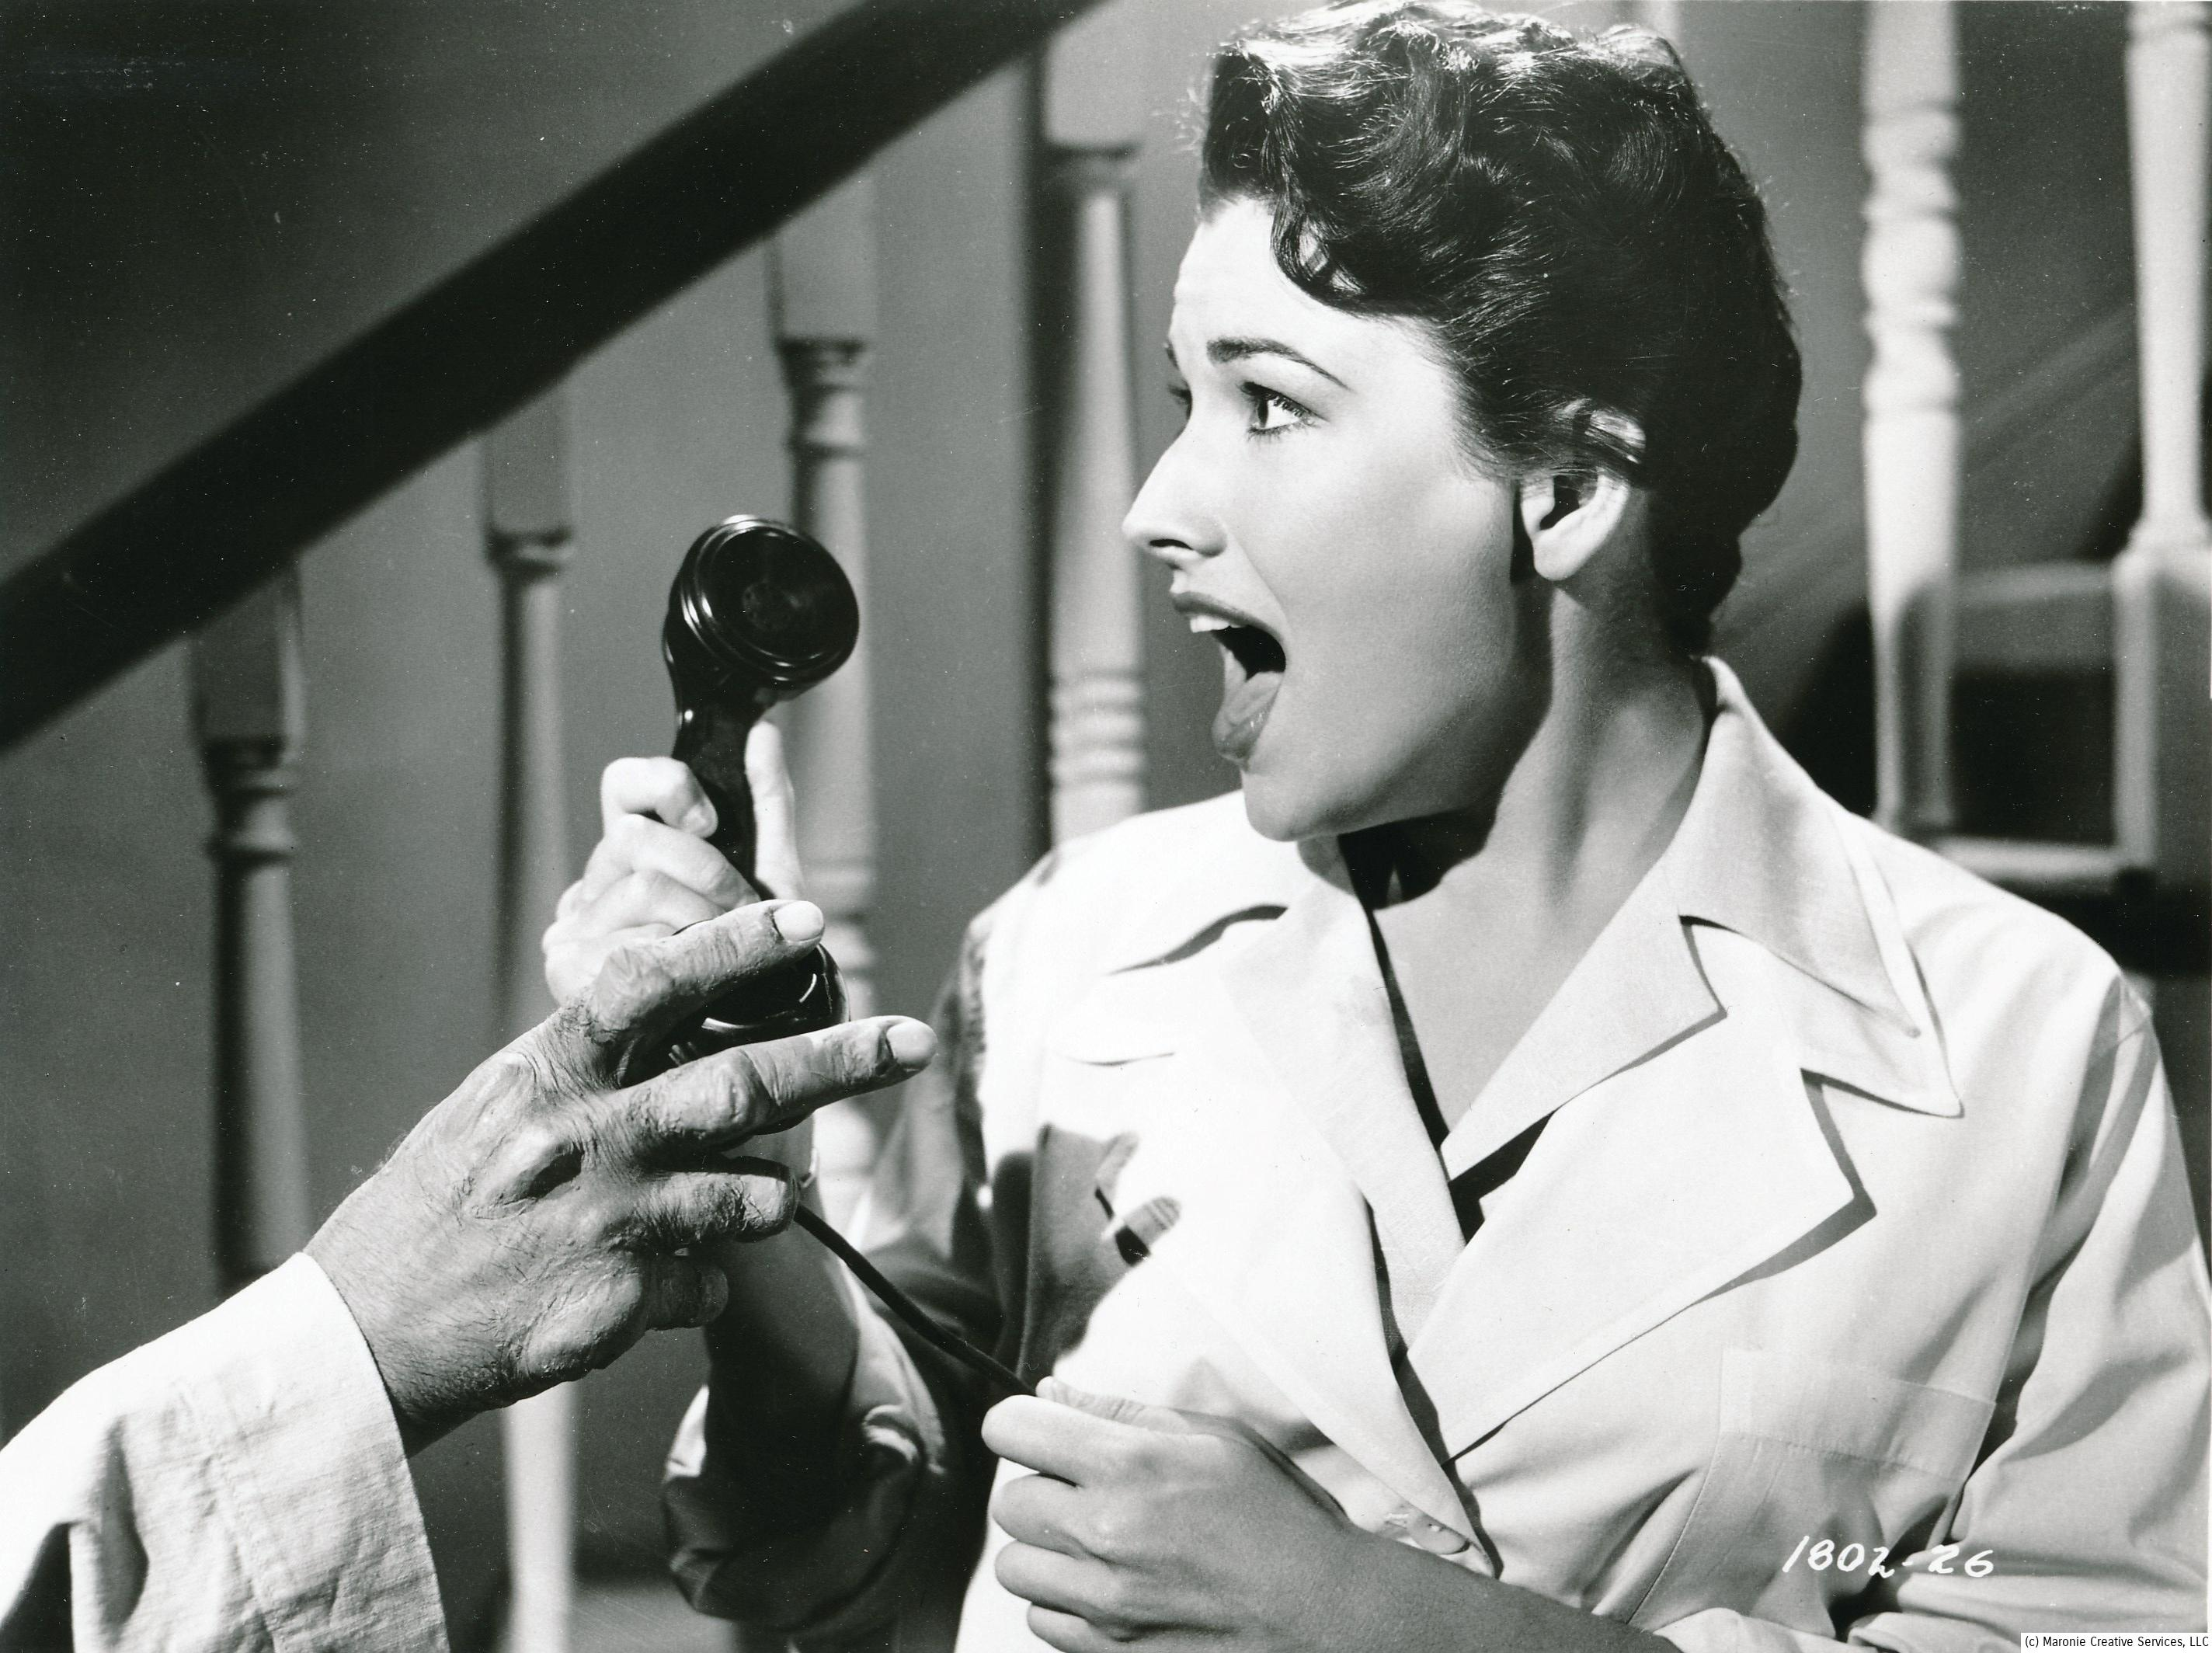 SORRY, WRONG NUMBER! Mara Corday takes a call for Leo G. Carroll in a tense scene from Tarantula. Too bad they didn't have cell service then!